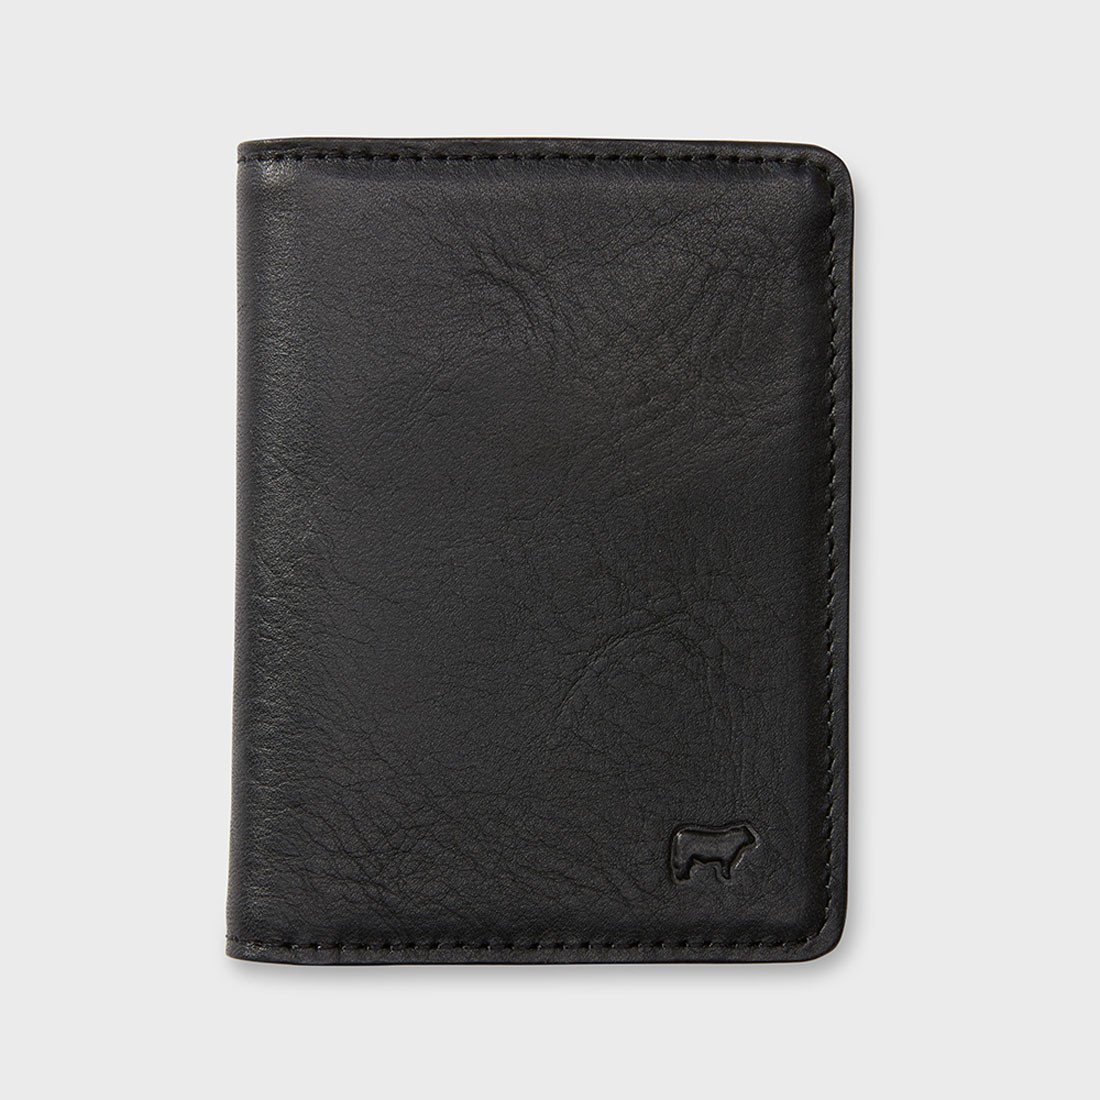 Will Leather Goods Cyrus Card Case Black